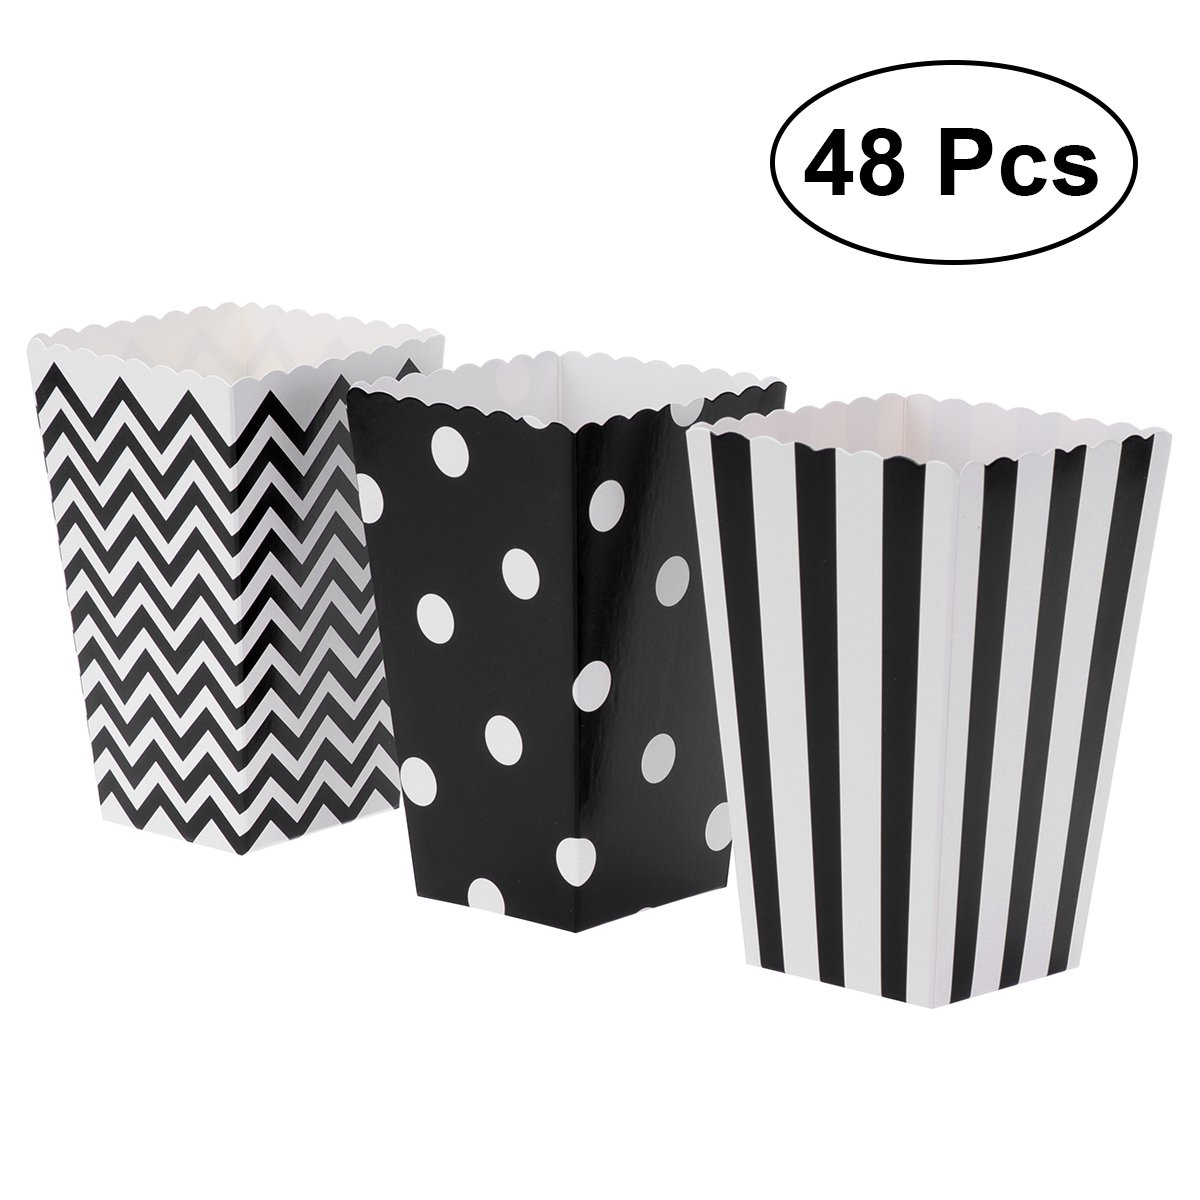 TOYMYTOY Popcorn Boxes,Paper Popcorn Boxes Popcorn Containers for Party Favor,48pcs (Black)